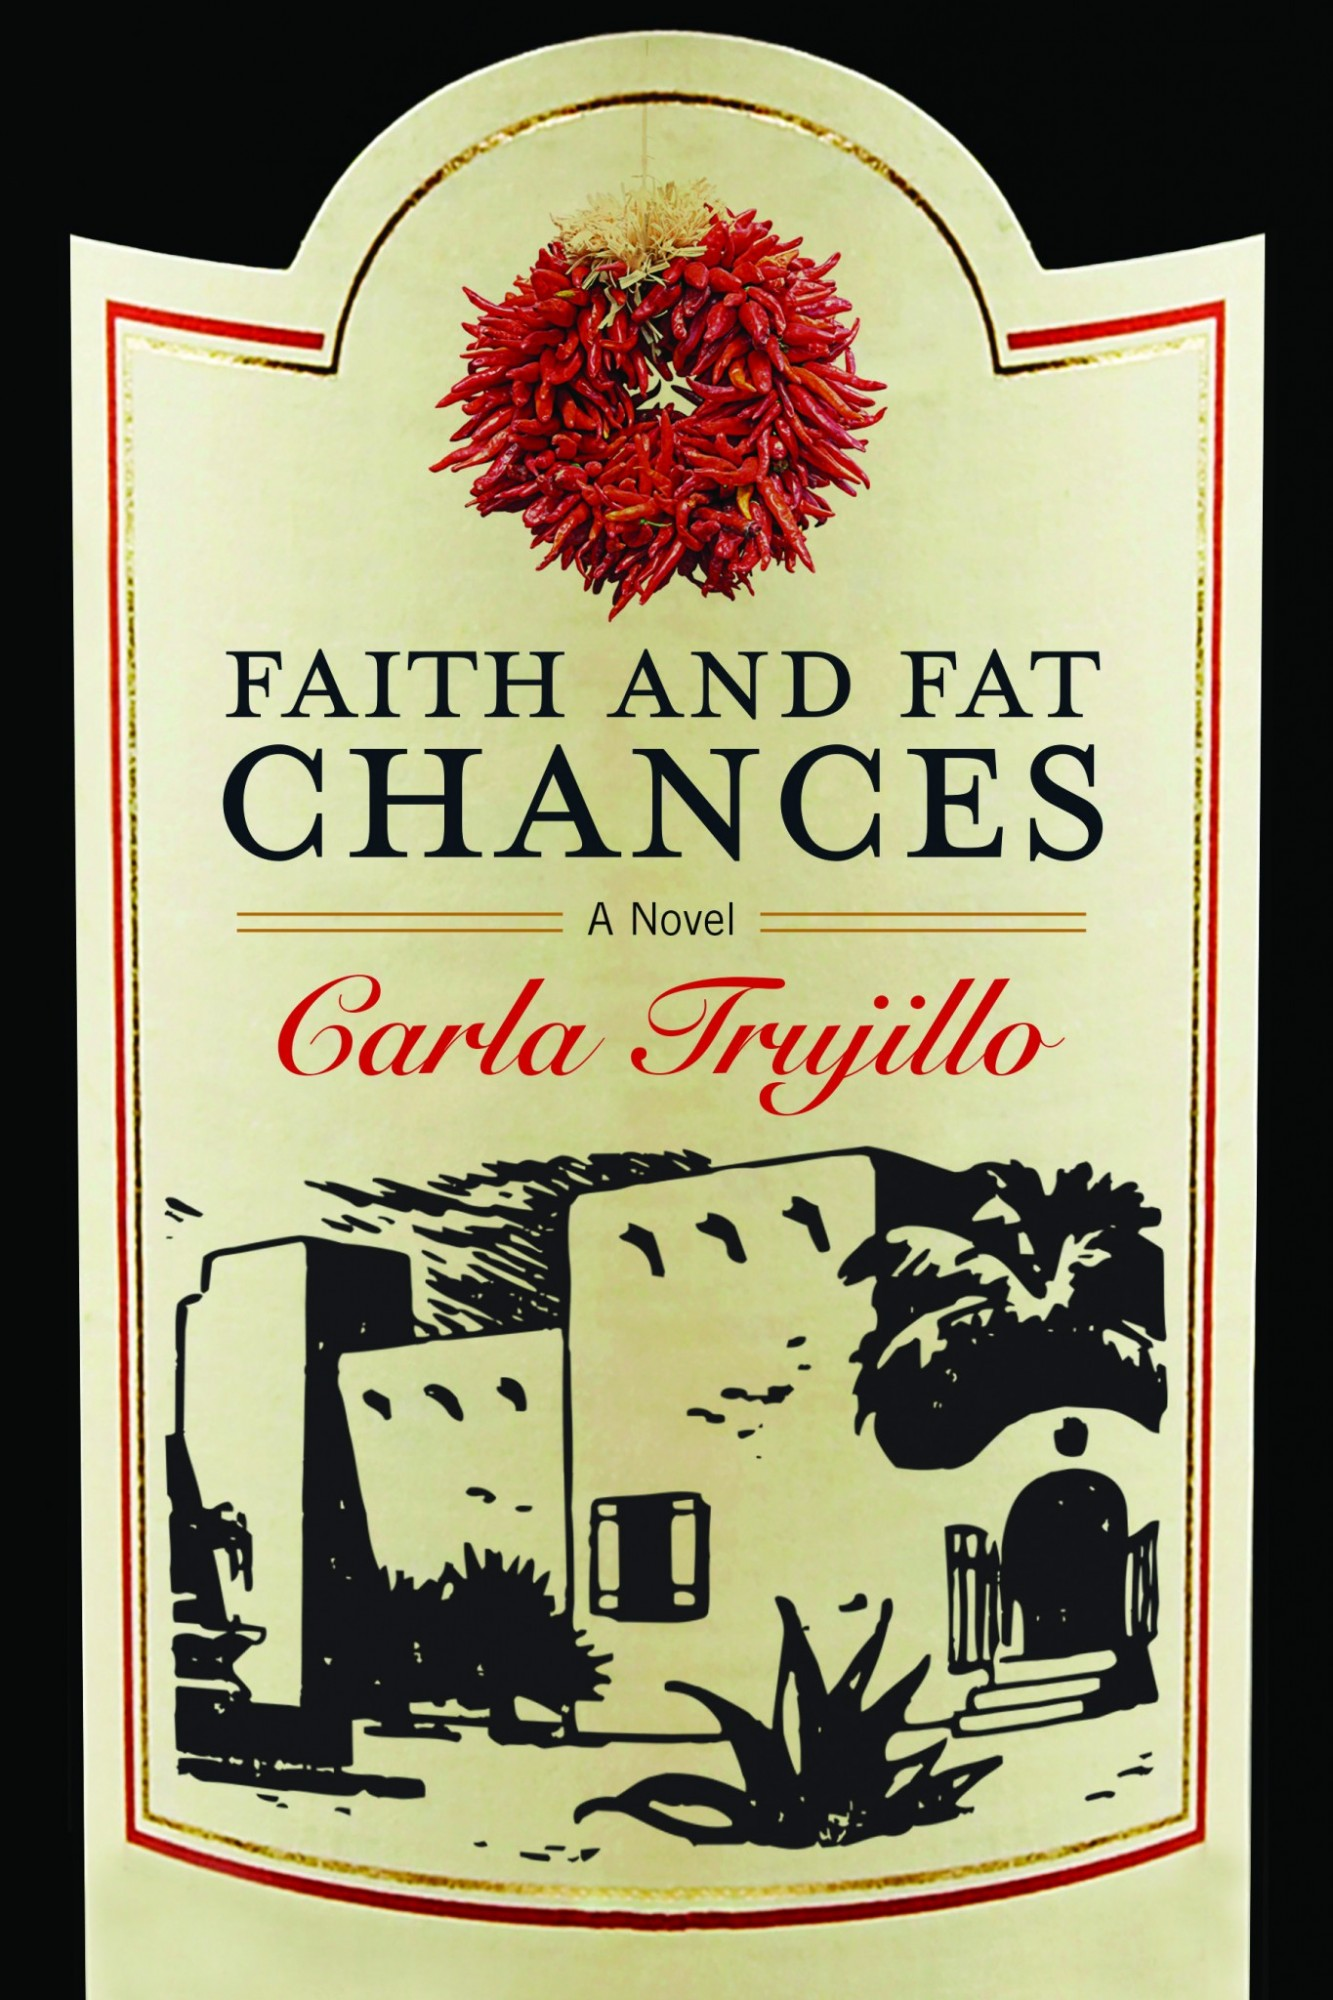 faith-and-fat-chances